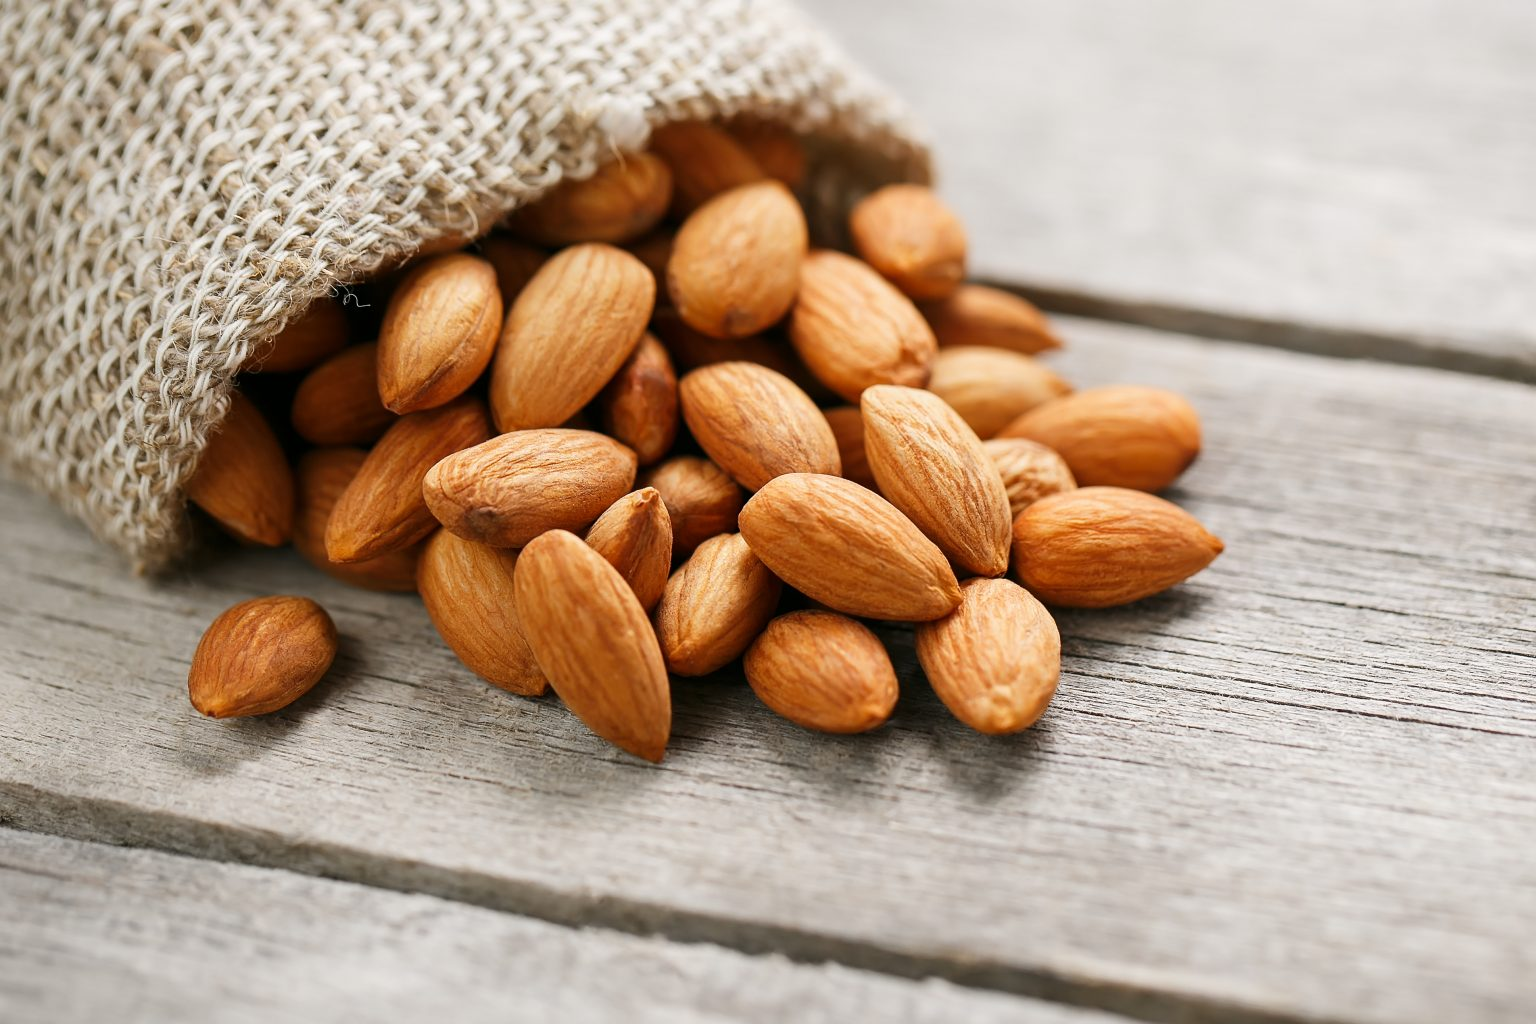 Almonds as they are chock-full of vitamin E and can help to keep your hair